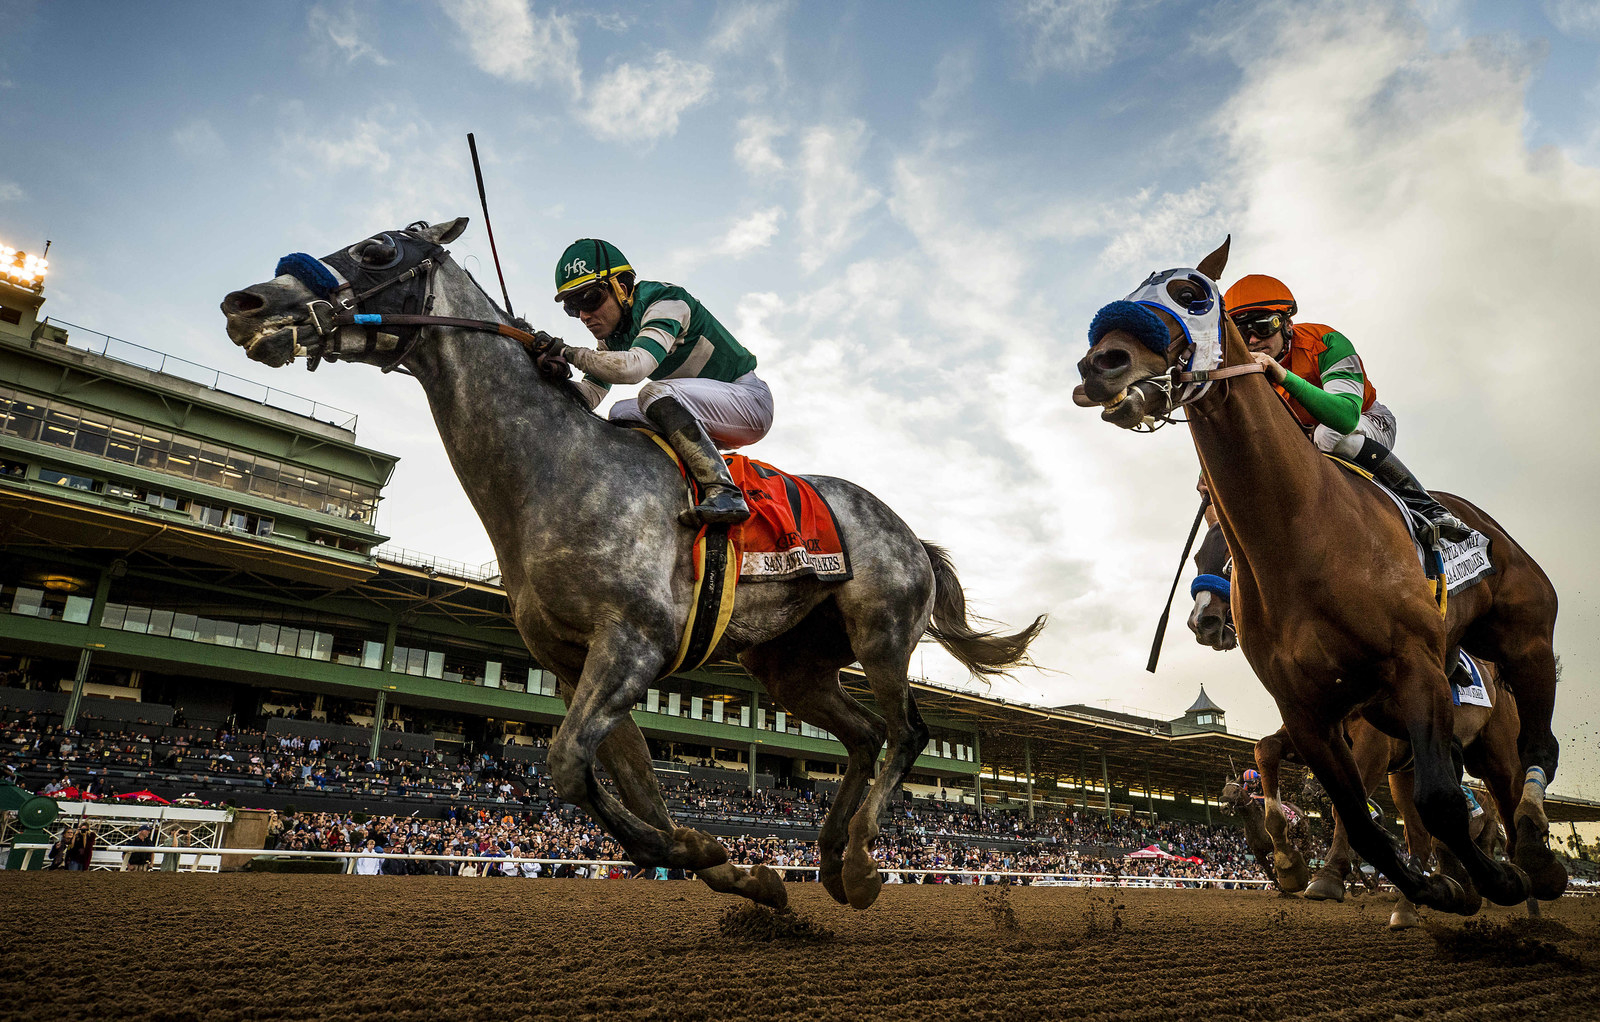 A California Racetrack Is Shutting Down Quot Indefinitely